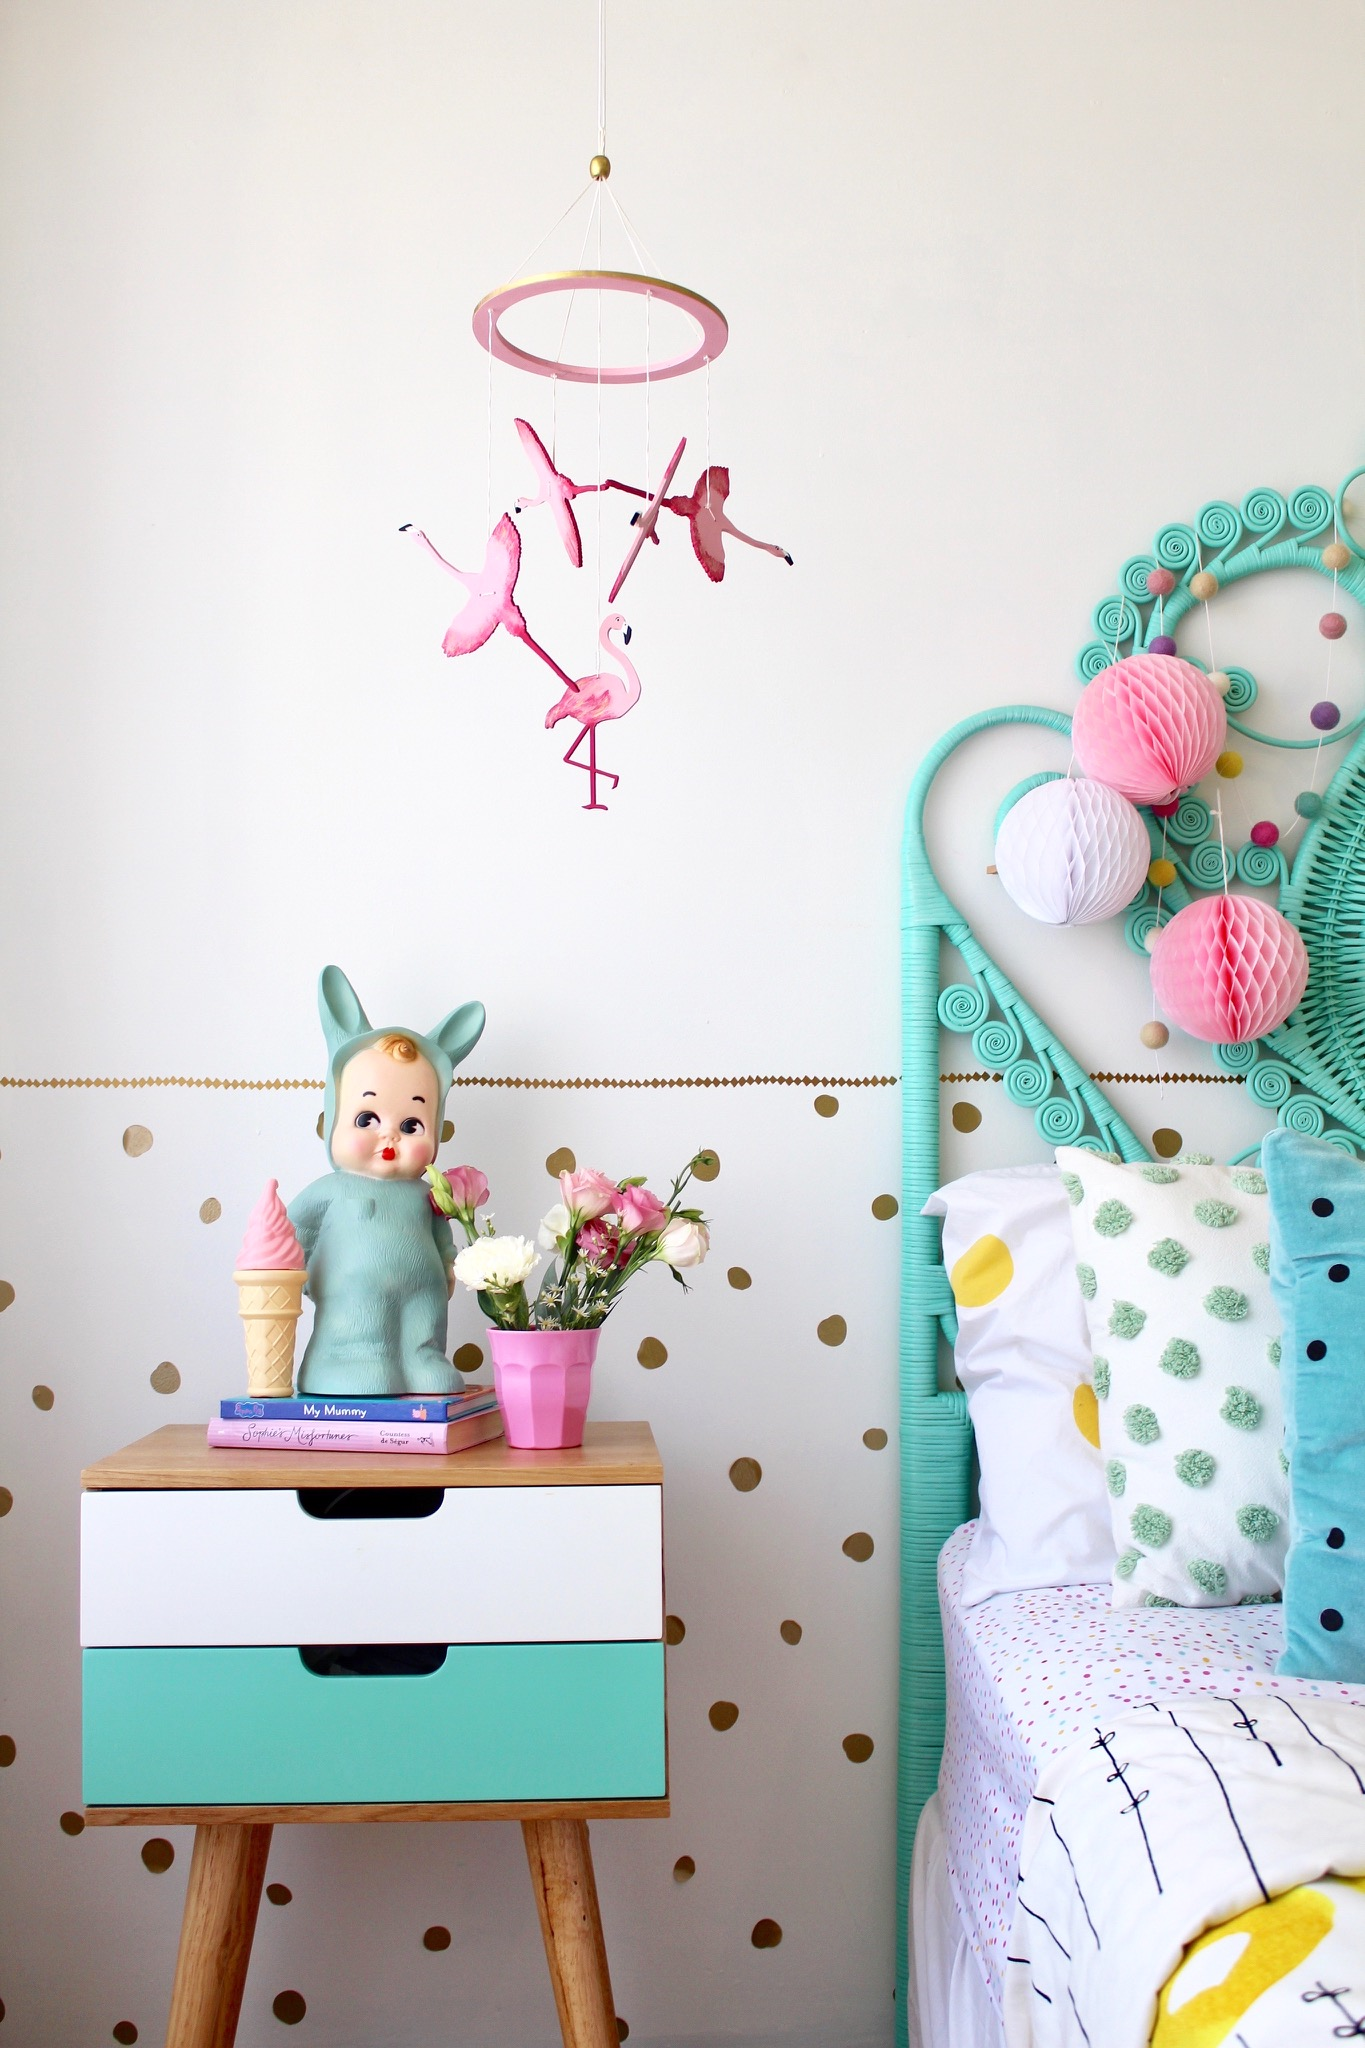 Kids decor - flamingo mobile by Sun and Co | children's and nursery bedroom ideas | styling and photography by four cheeky monkeys